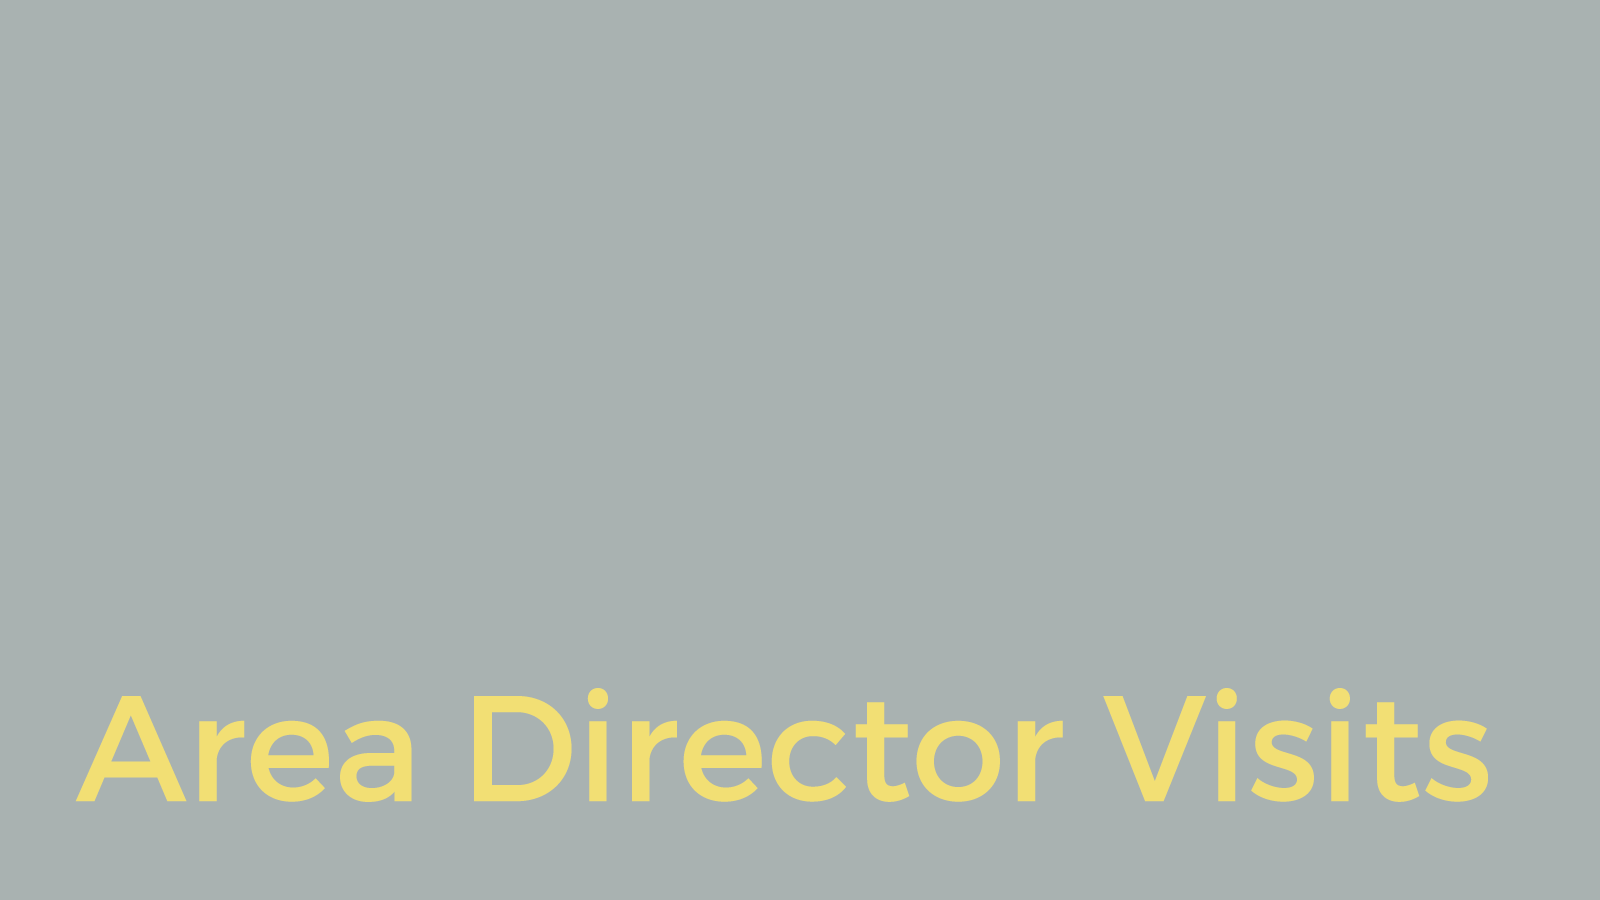 Area Director Visits and Reports Due November 30, 2017